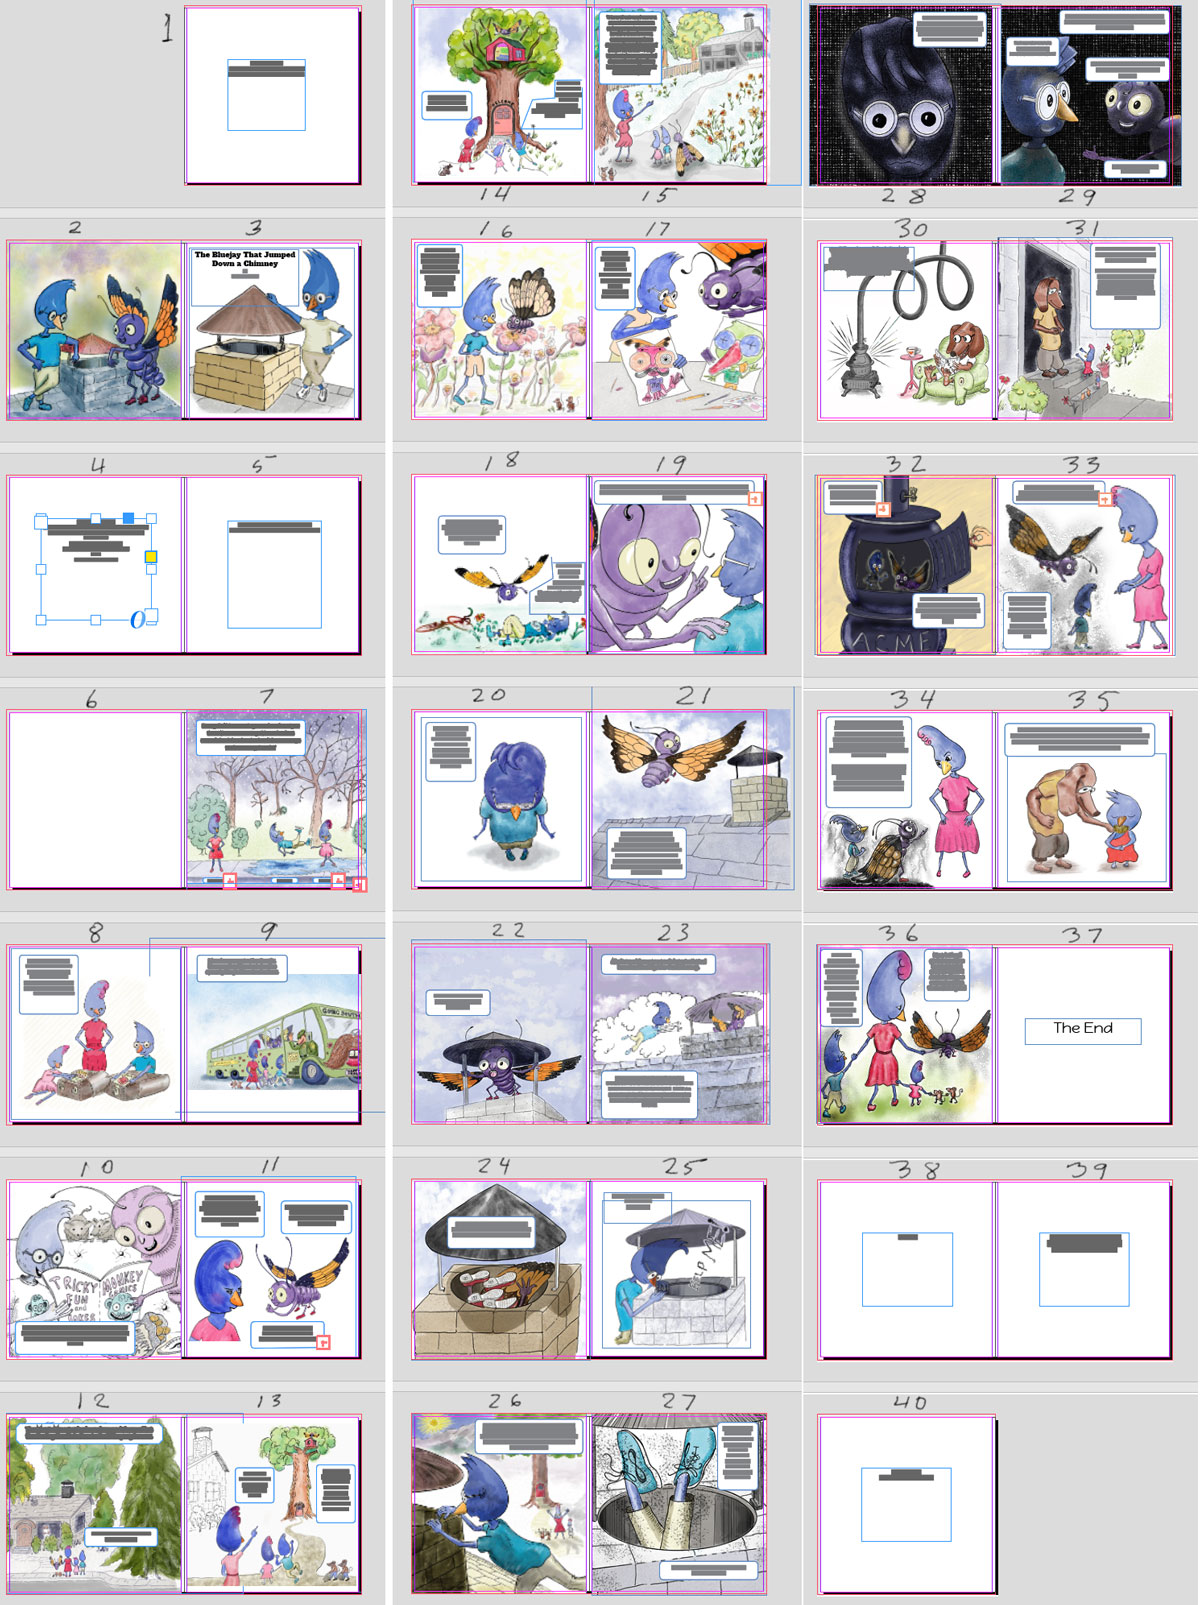 montage_blog.jpg montage of thumbnails, InDesign, Children's picture book, all pages